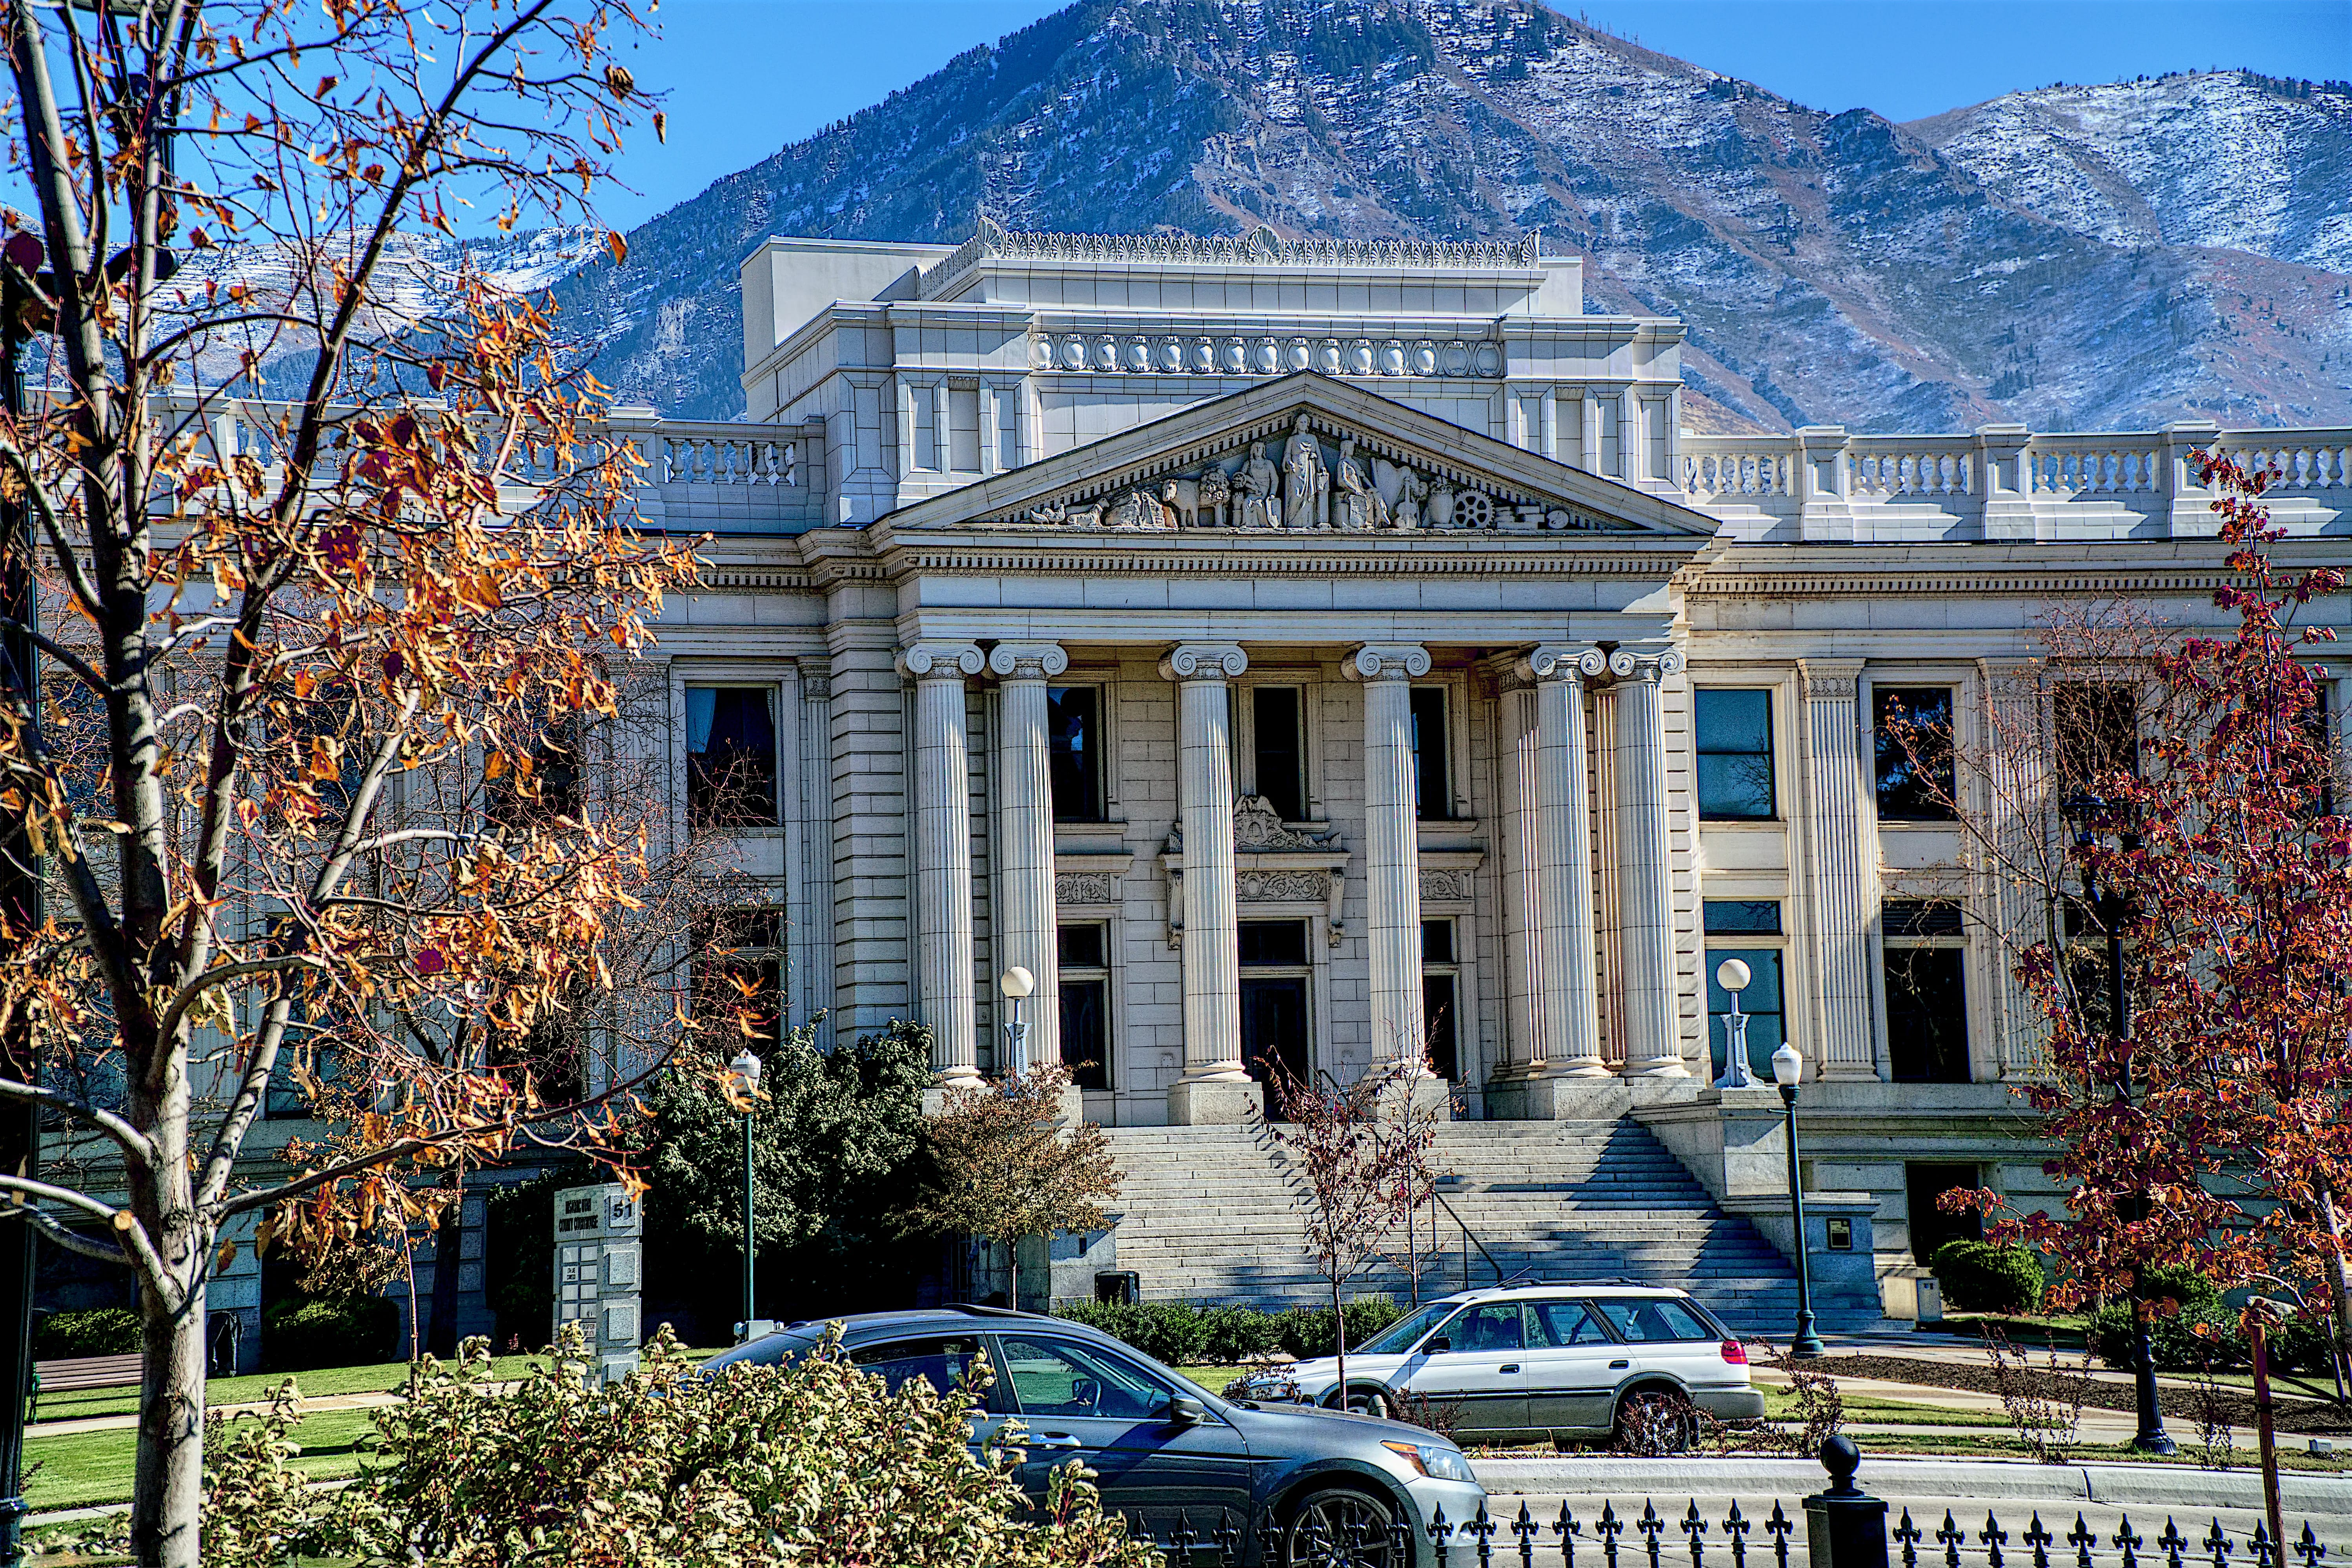 Started in 1919 and completed in 1926 at a cost of $576,000 the Utah County Courthouse is an Original Greek design and not a copy of any other structure. Image by Michael Hart, via Unsplash.com.